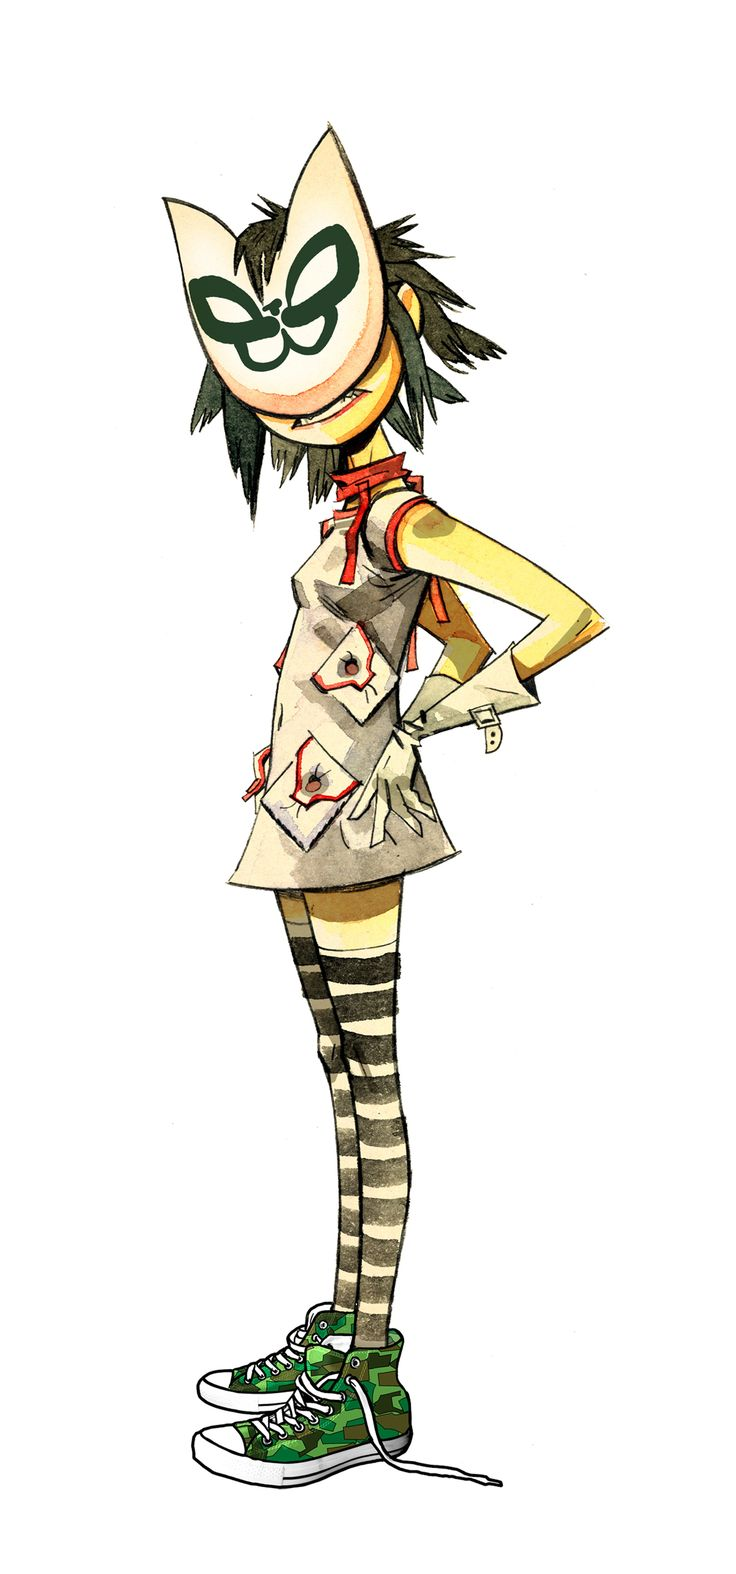 Noodle from The Gorillaz                                                                                                                                                                                 Más                                                                                                                                                                                 Más